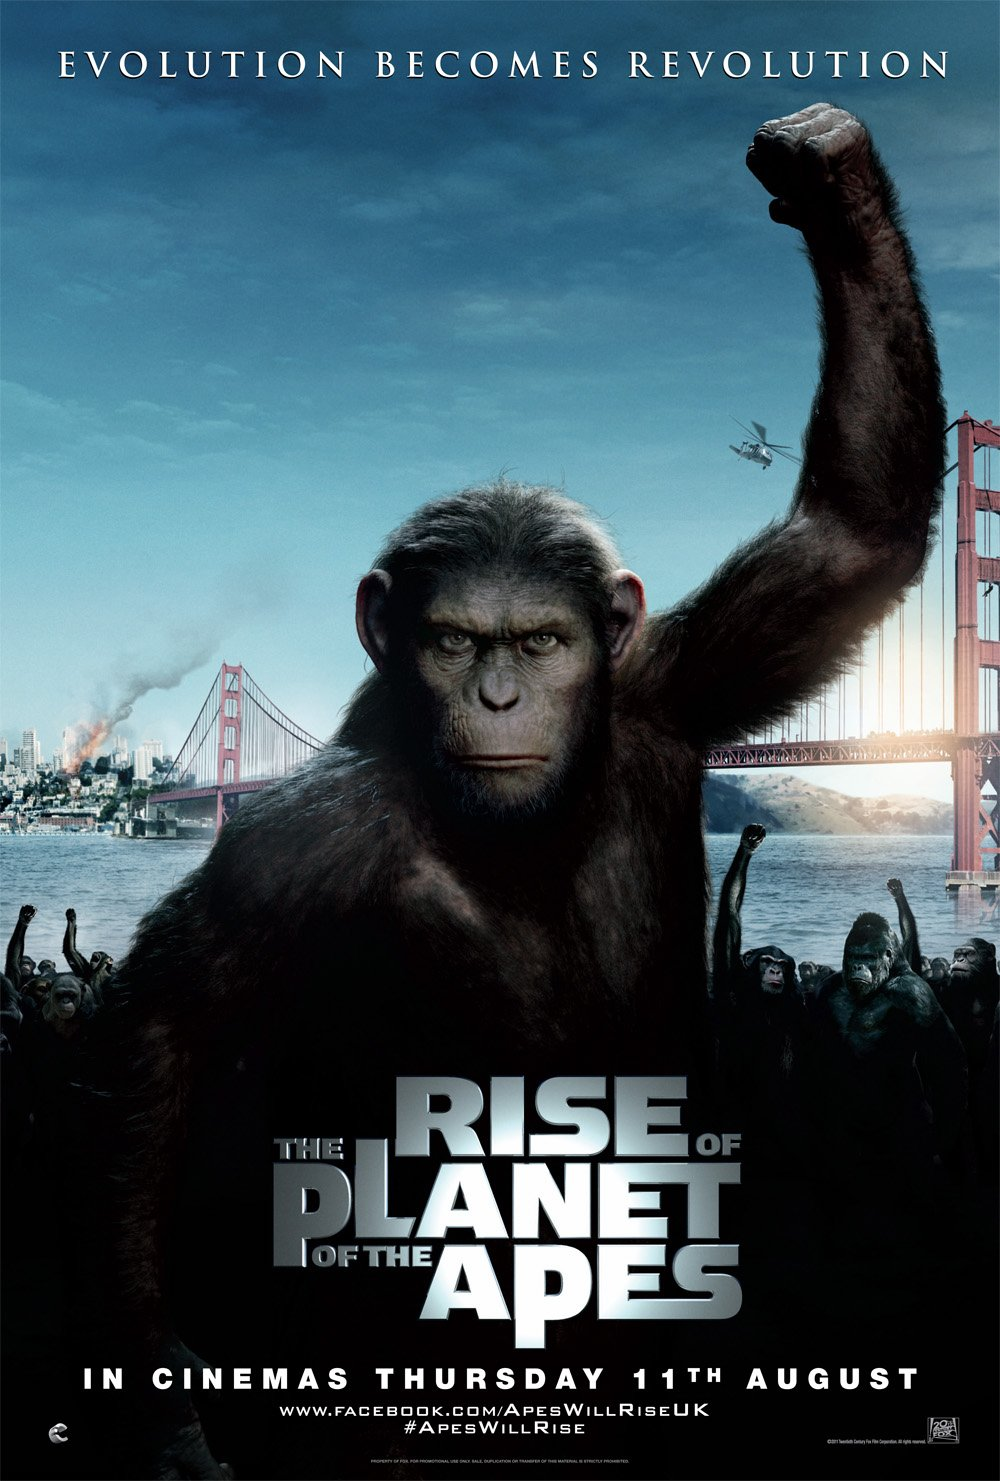 rise of the planet of the apes Rise of the planet of the apes (2011):a substance, designed to help the brain repair itself, gives rise to a super-intelligent chimp who leads an ape uprising.